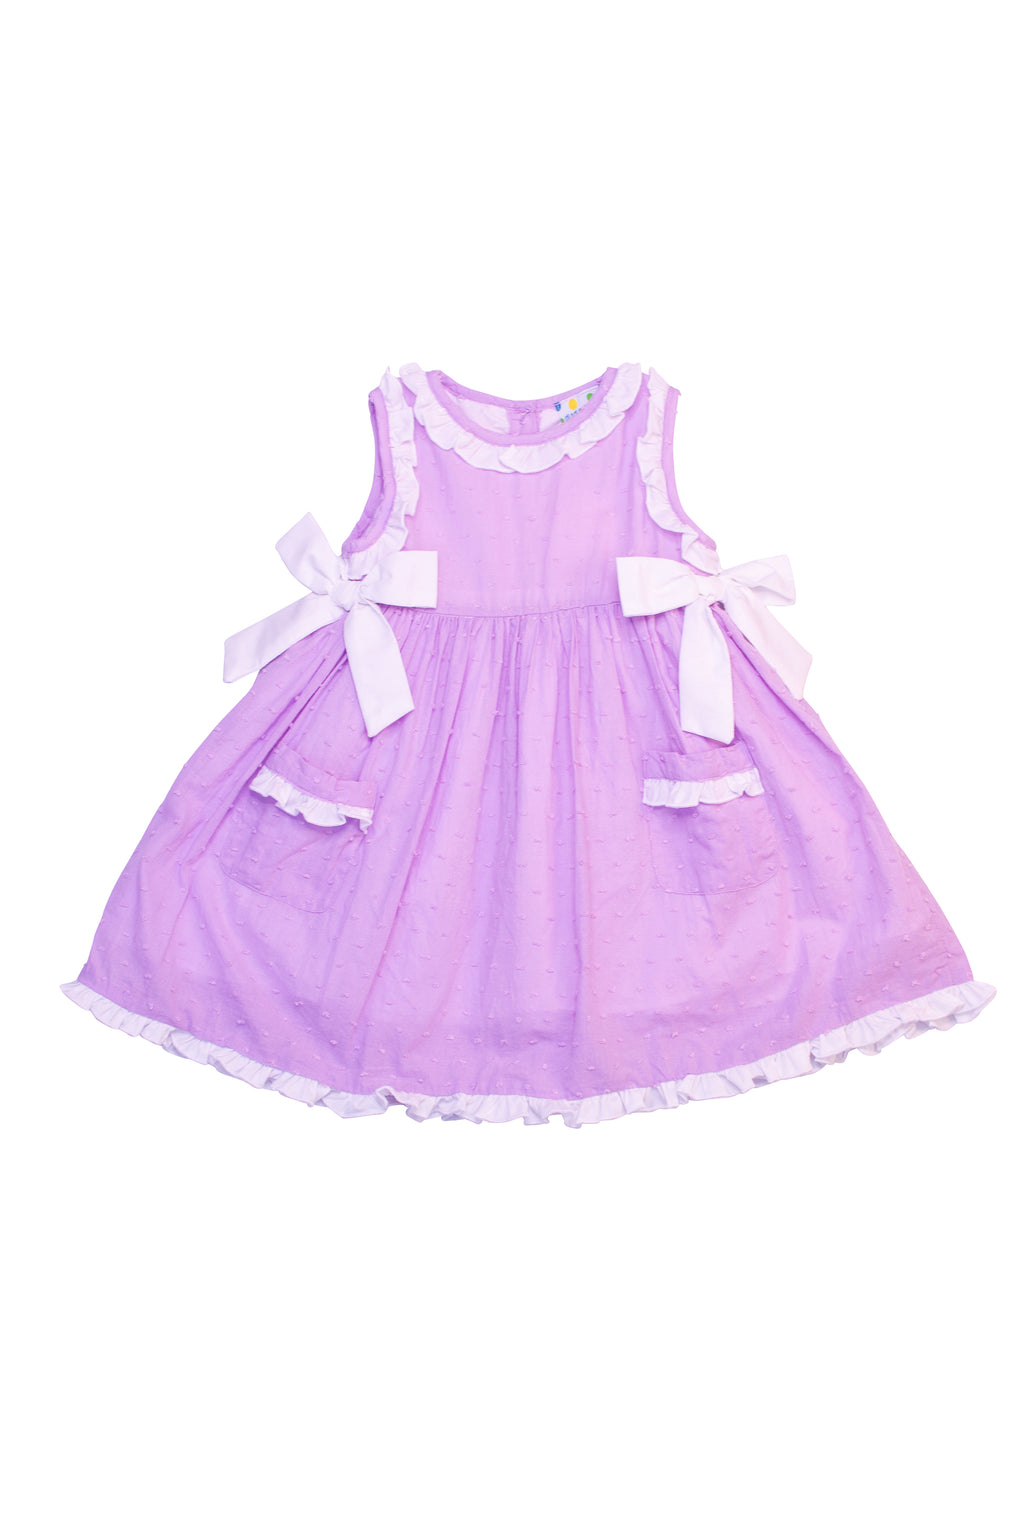 Girls Lavender Swiss Dot Dress